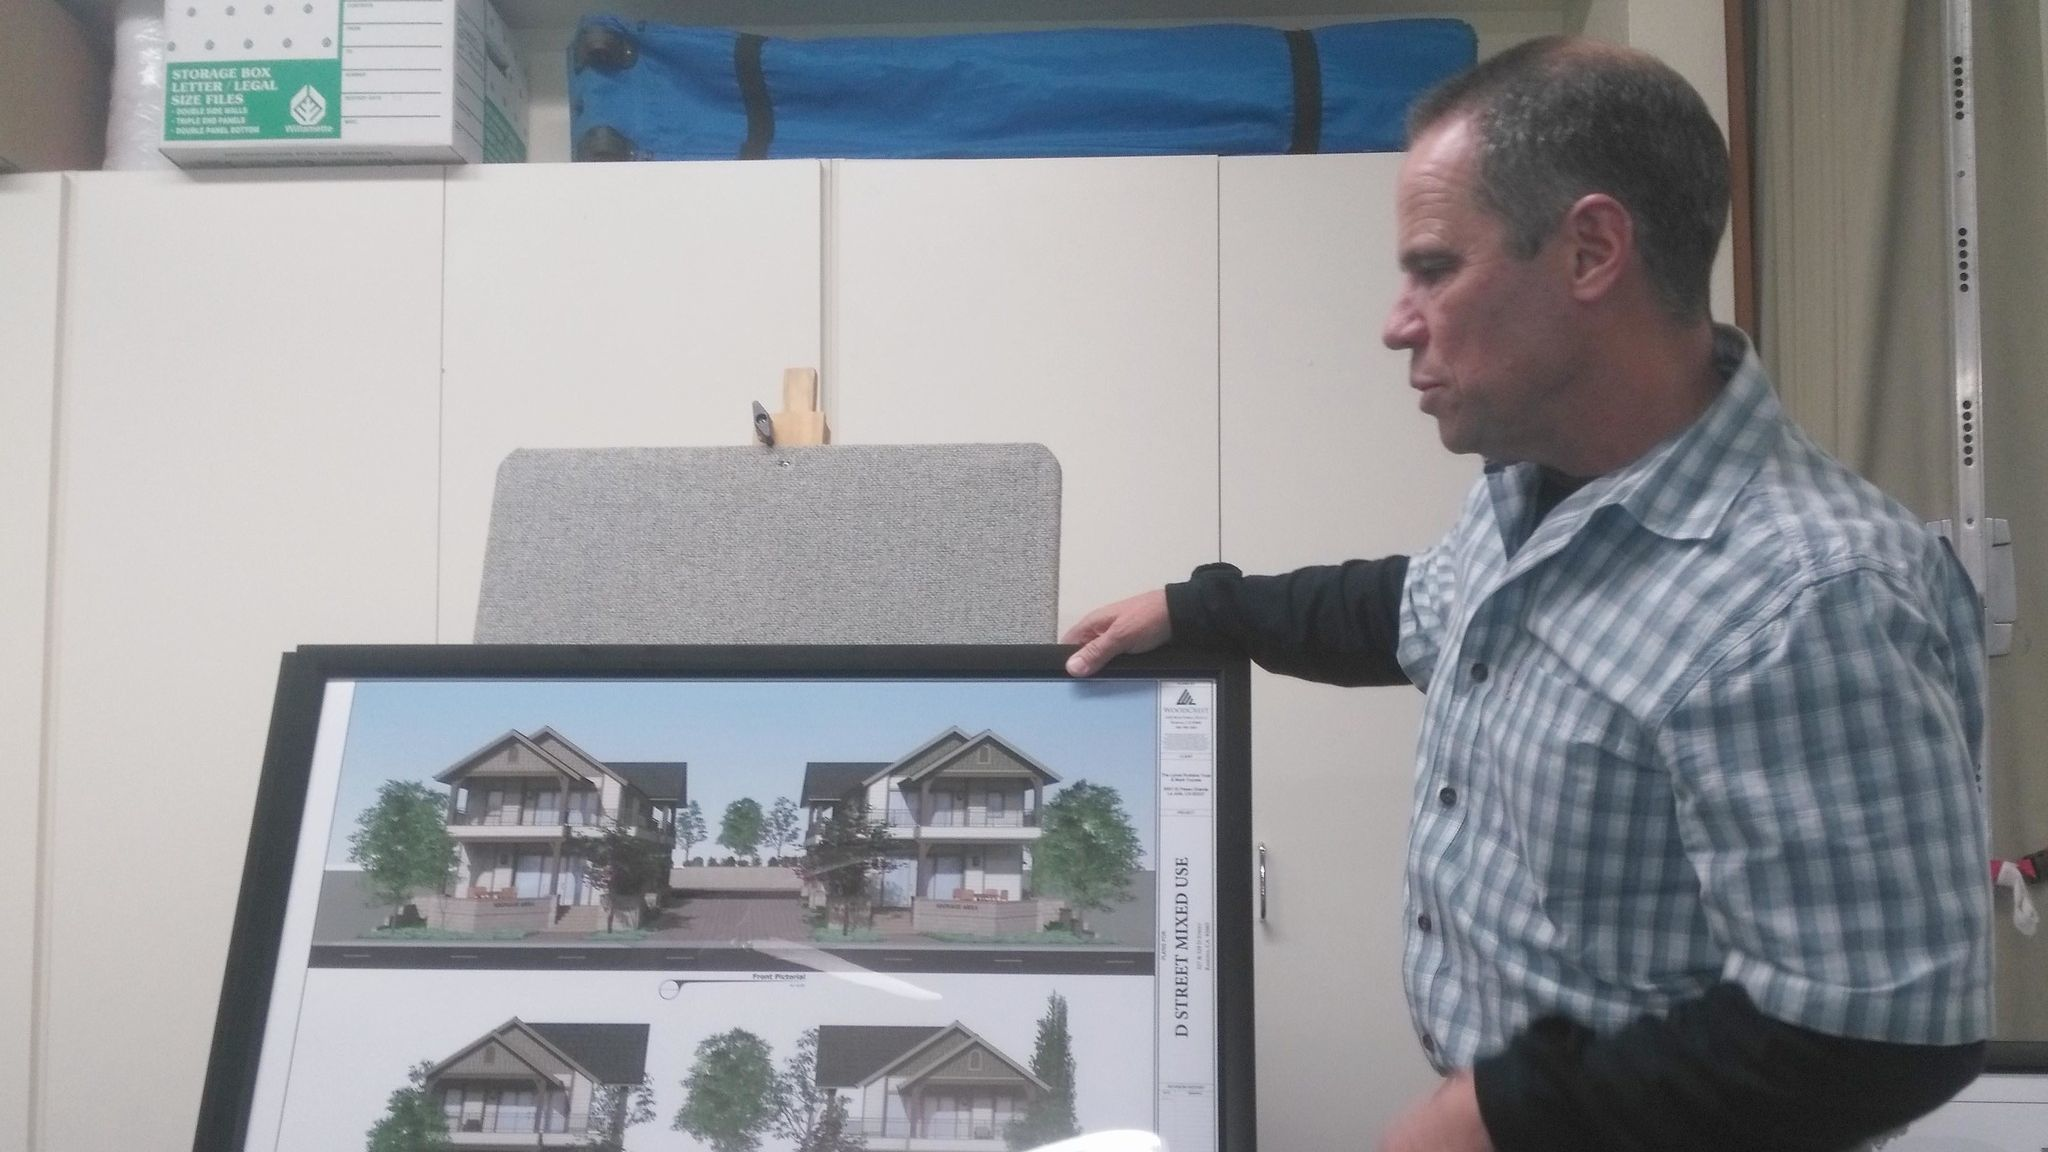 Steve Powell of Woodcrest Companies presents renderings of two identical mixed-use projects accommodating retail on the ground floor and residential above.